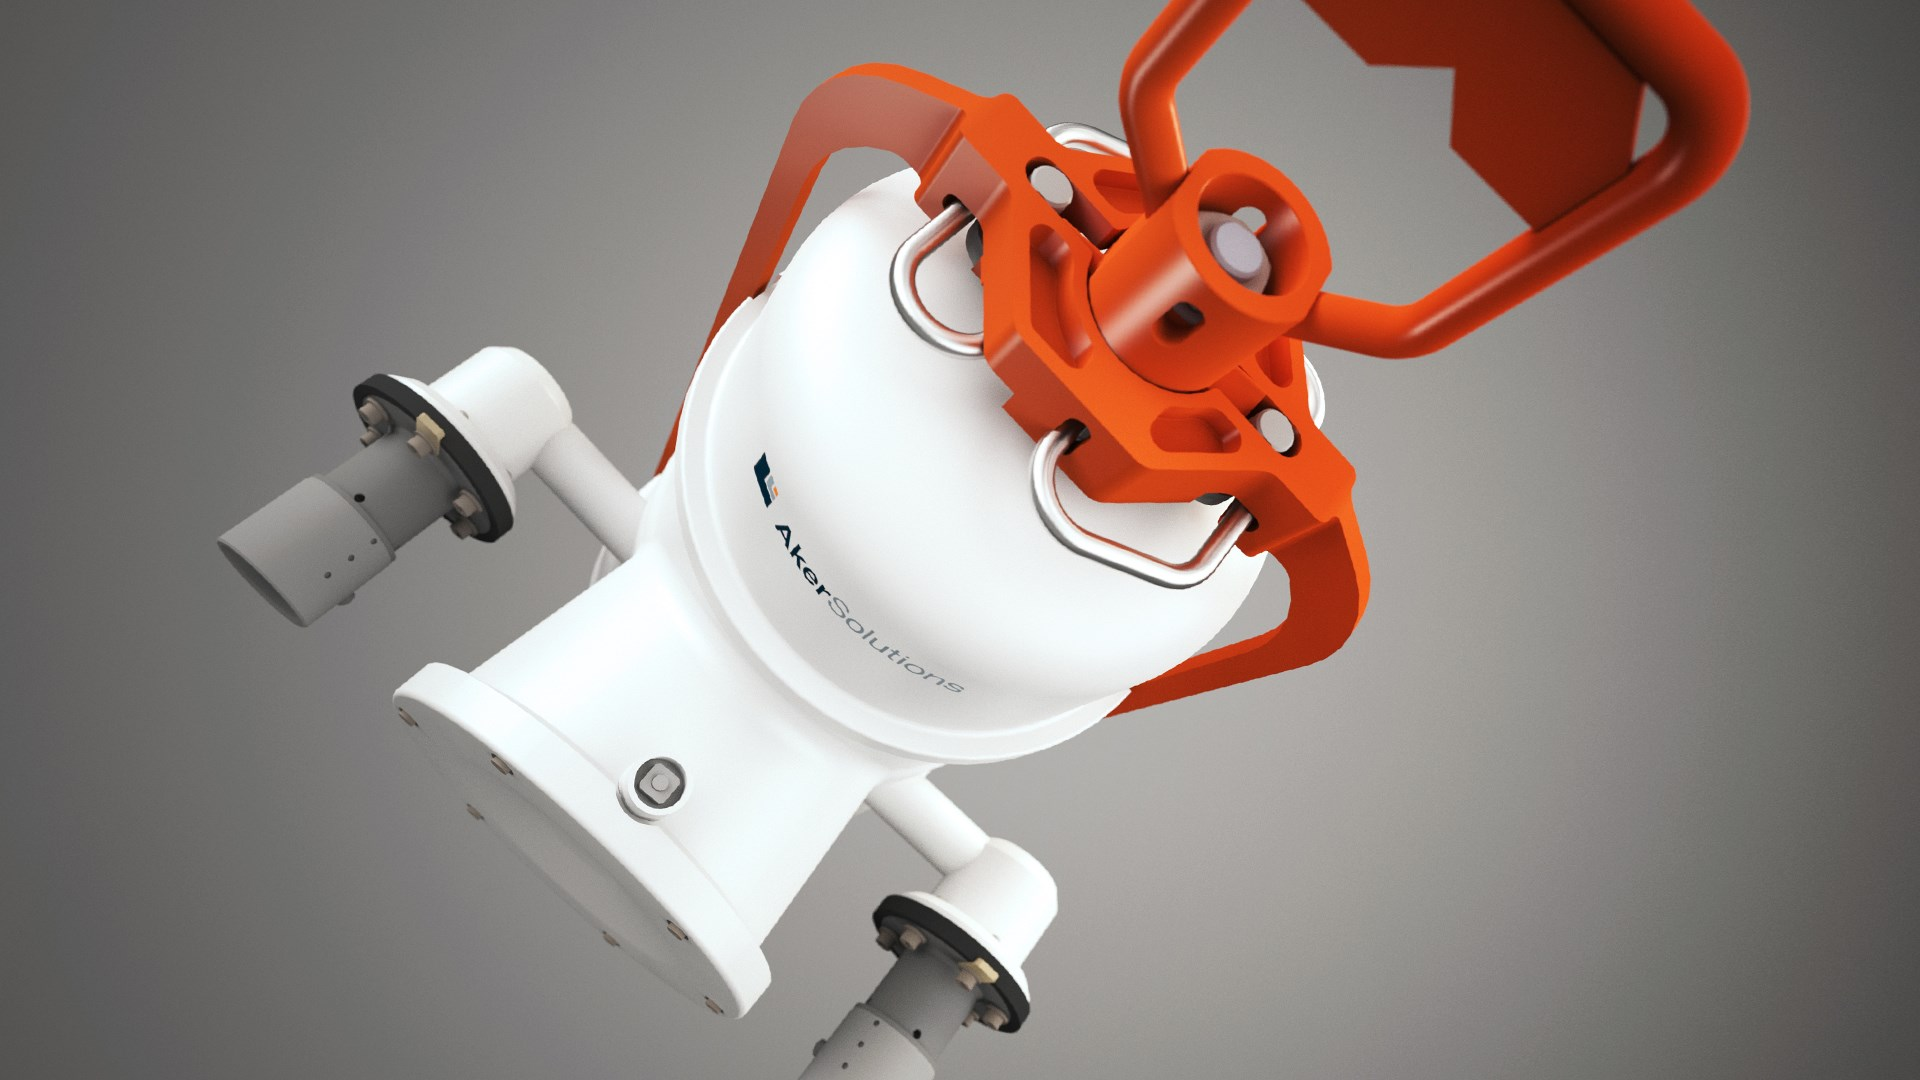 subsea electric actuator is ready for market